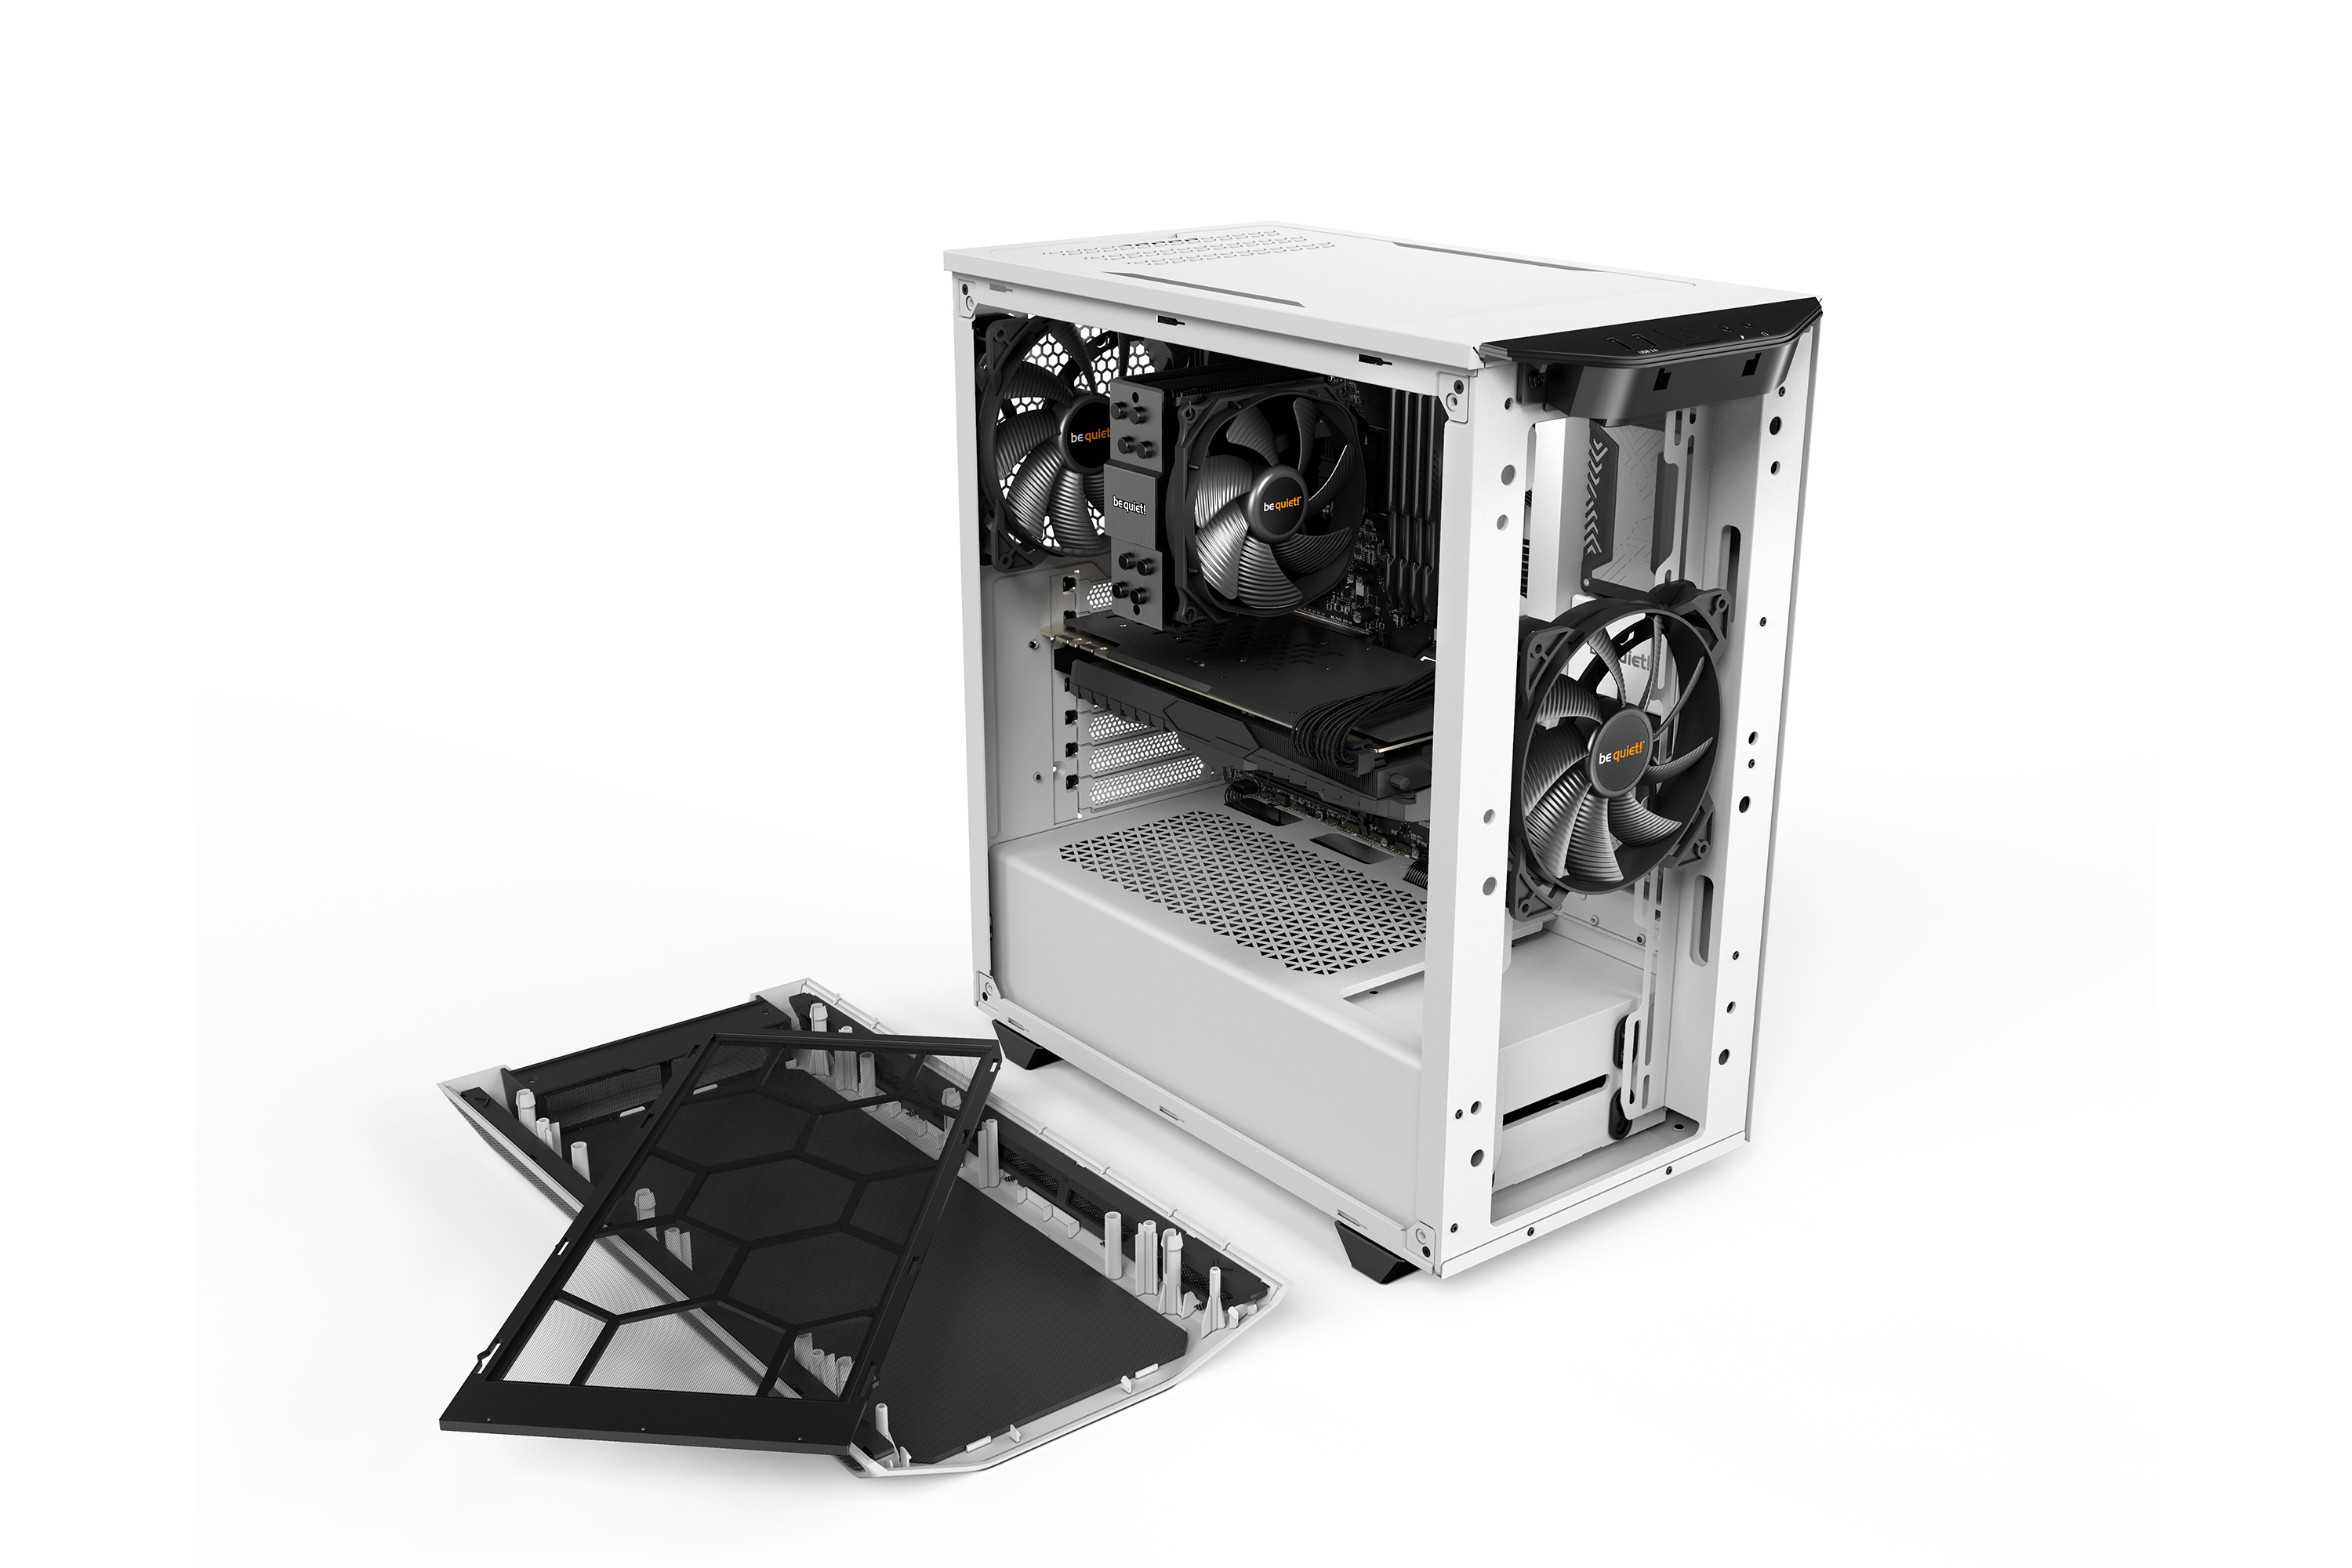 be quiet! Pure Base 500 White Window, 450 x 231 x 443, IO-panel 2x USB 3.0, HD Audio, 2x 3,5, 5x 2,5, inc 2x 140 mm Pure Wings 2, Watercooling ready